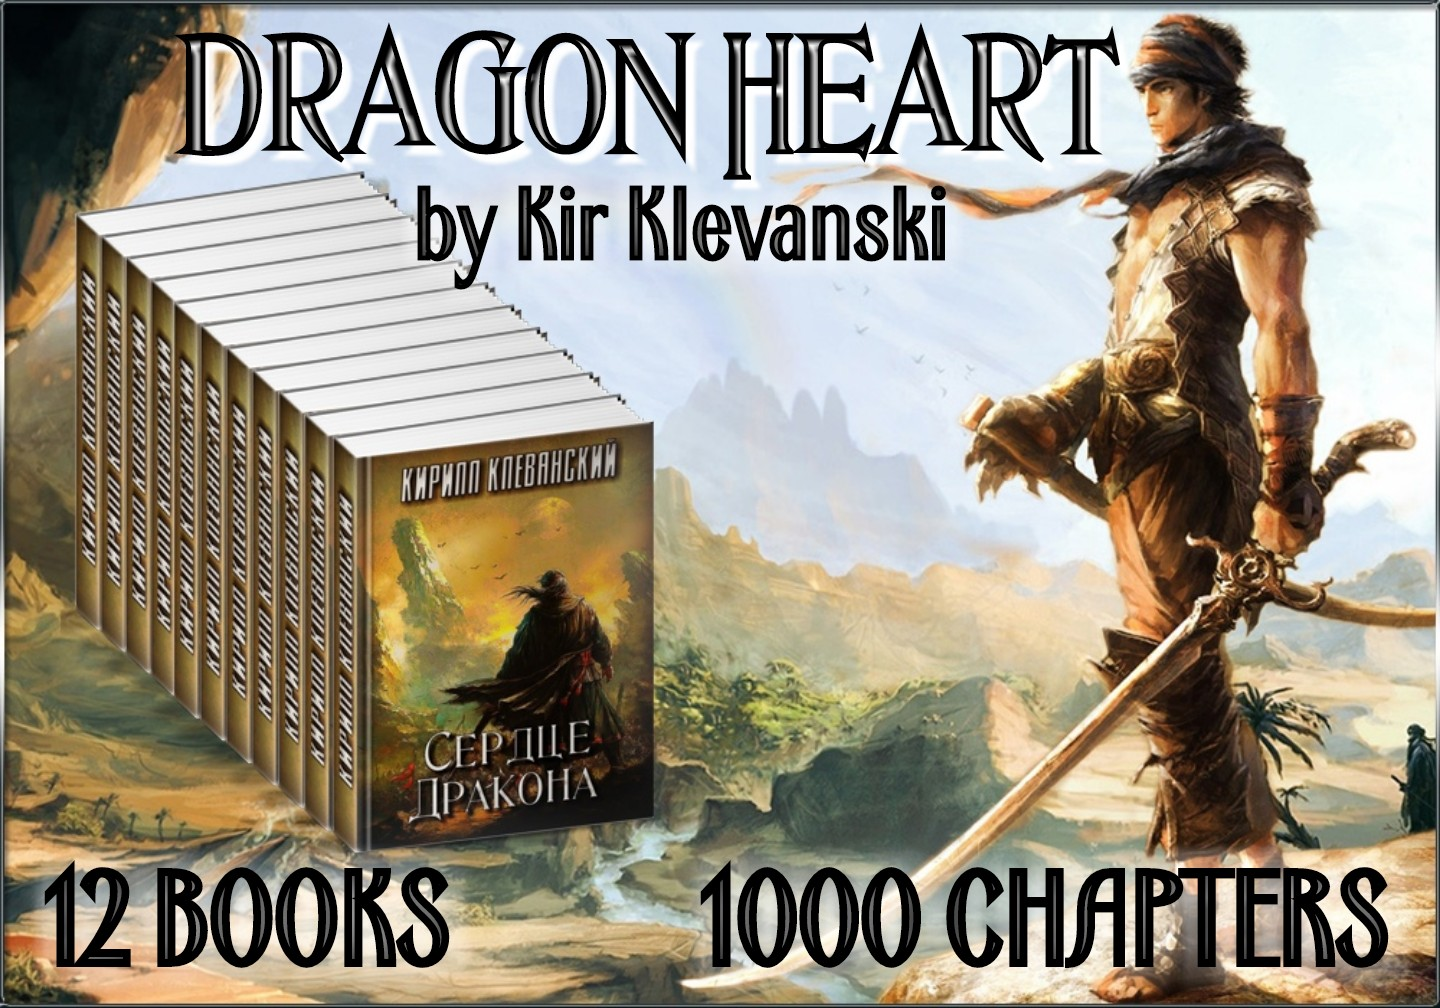 Dragon Heart  Iron Will  LitRPG wuxia saga  Book 2 | Royal Road